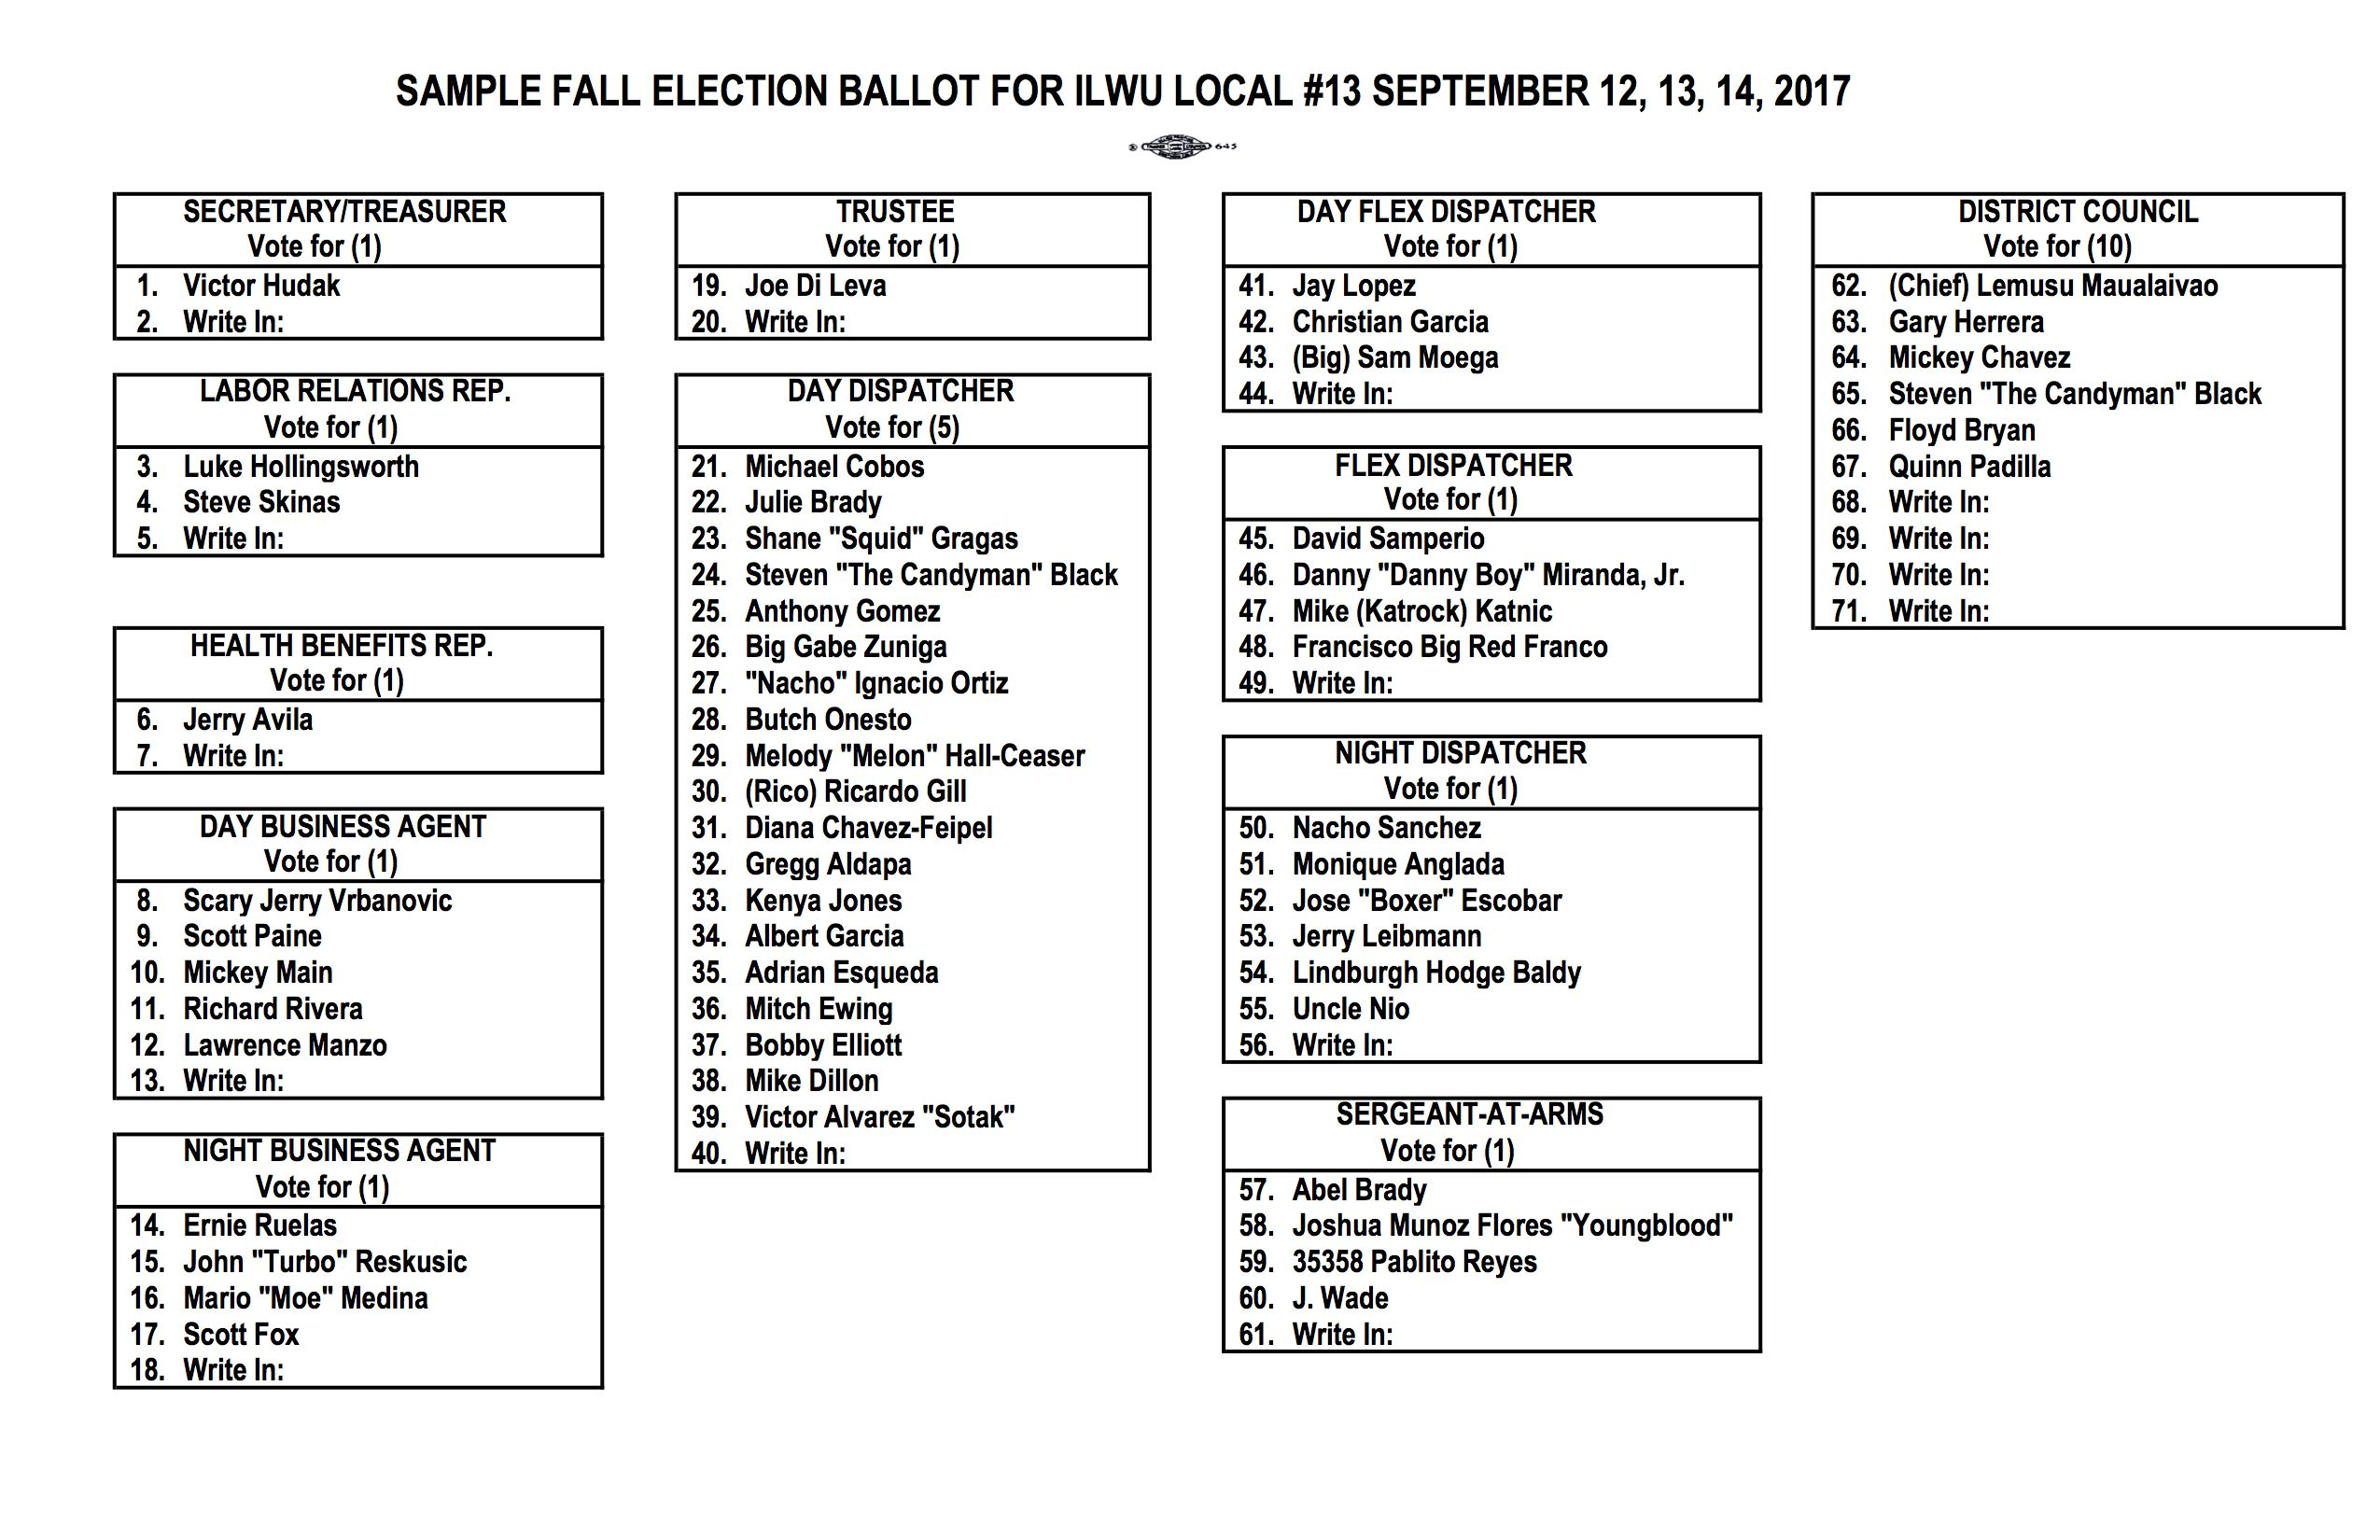 2017 Fall Election Ballot Sample